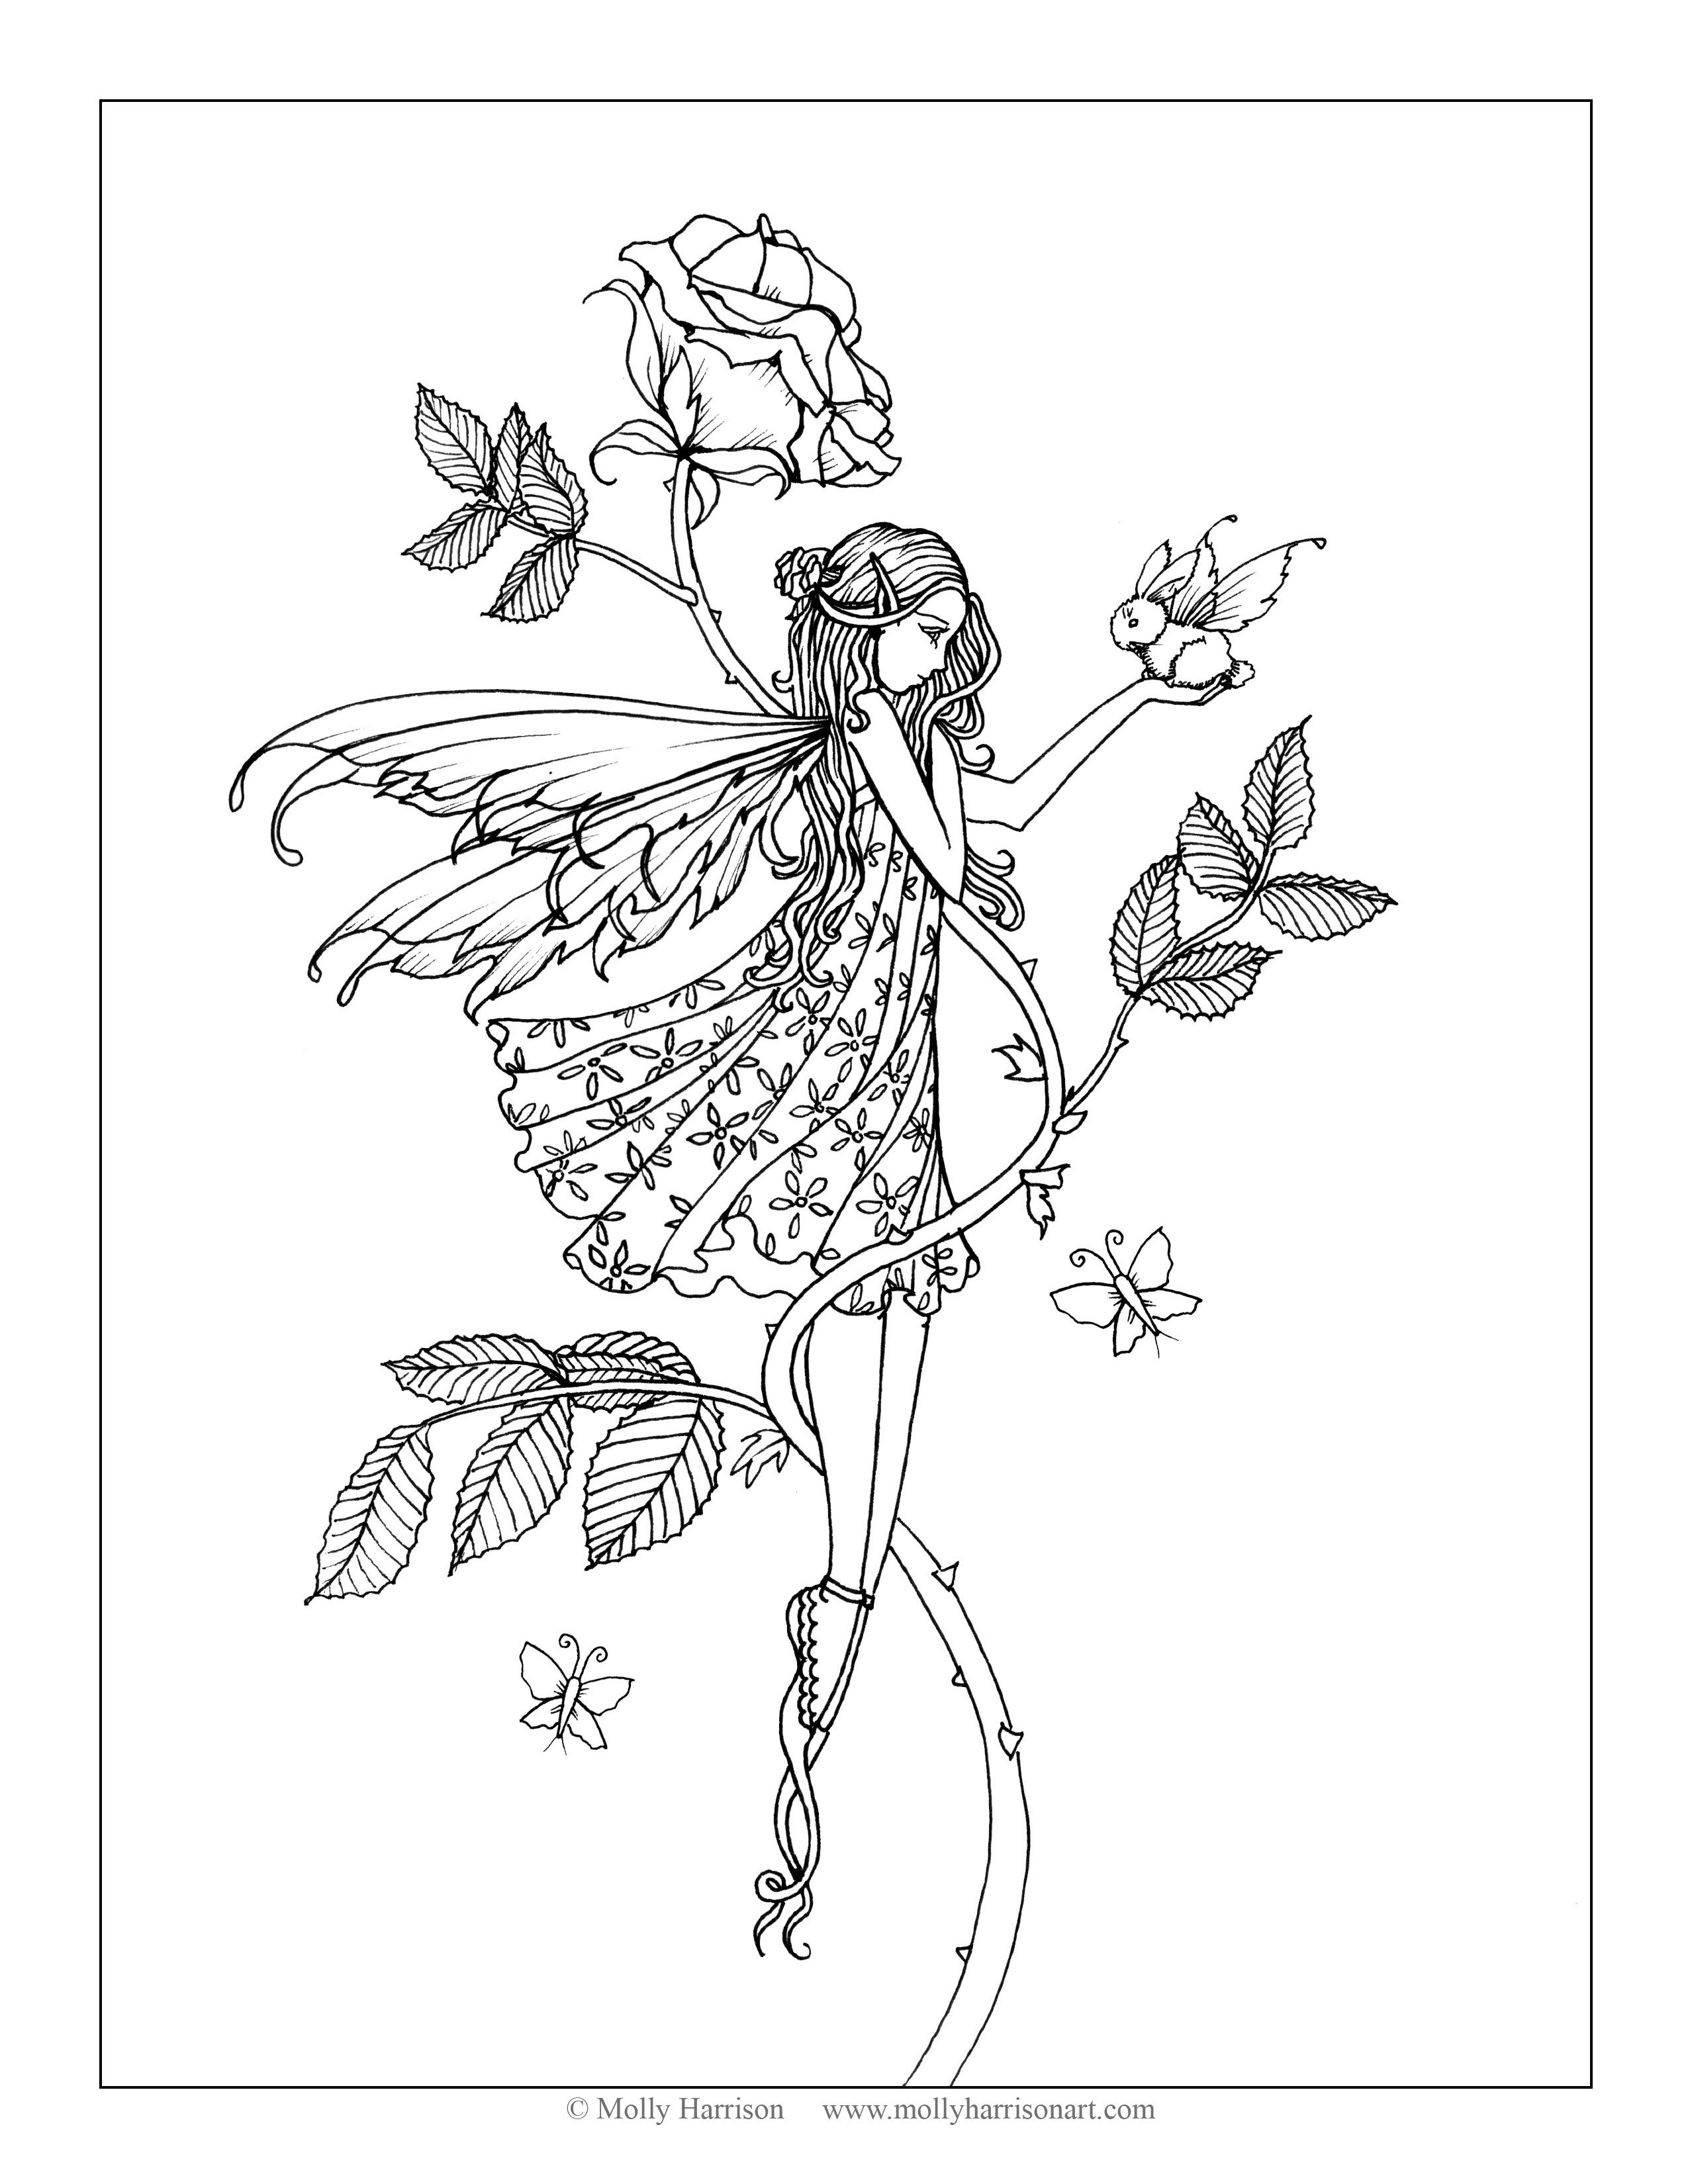 Free Fairy Coloring Page By Molly Harrison Fantasy Art Roses Friend Kids Wood Crafts Pages